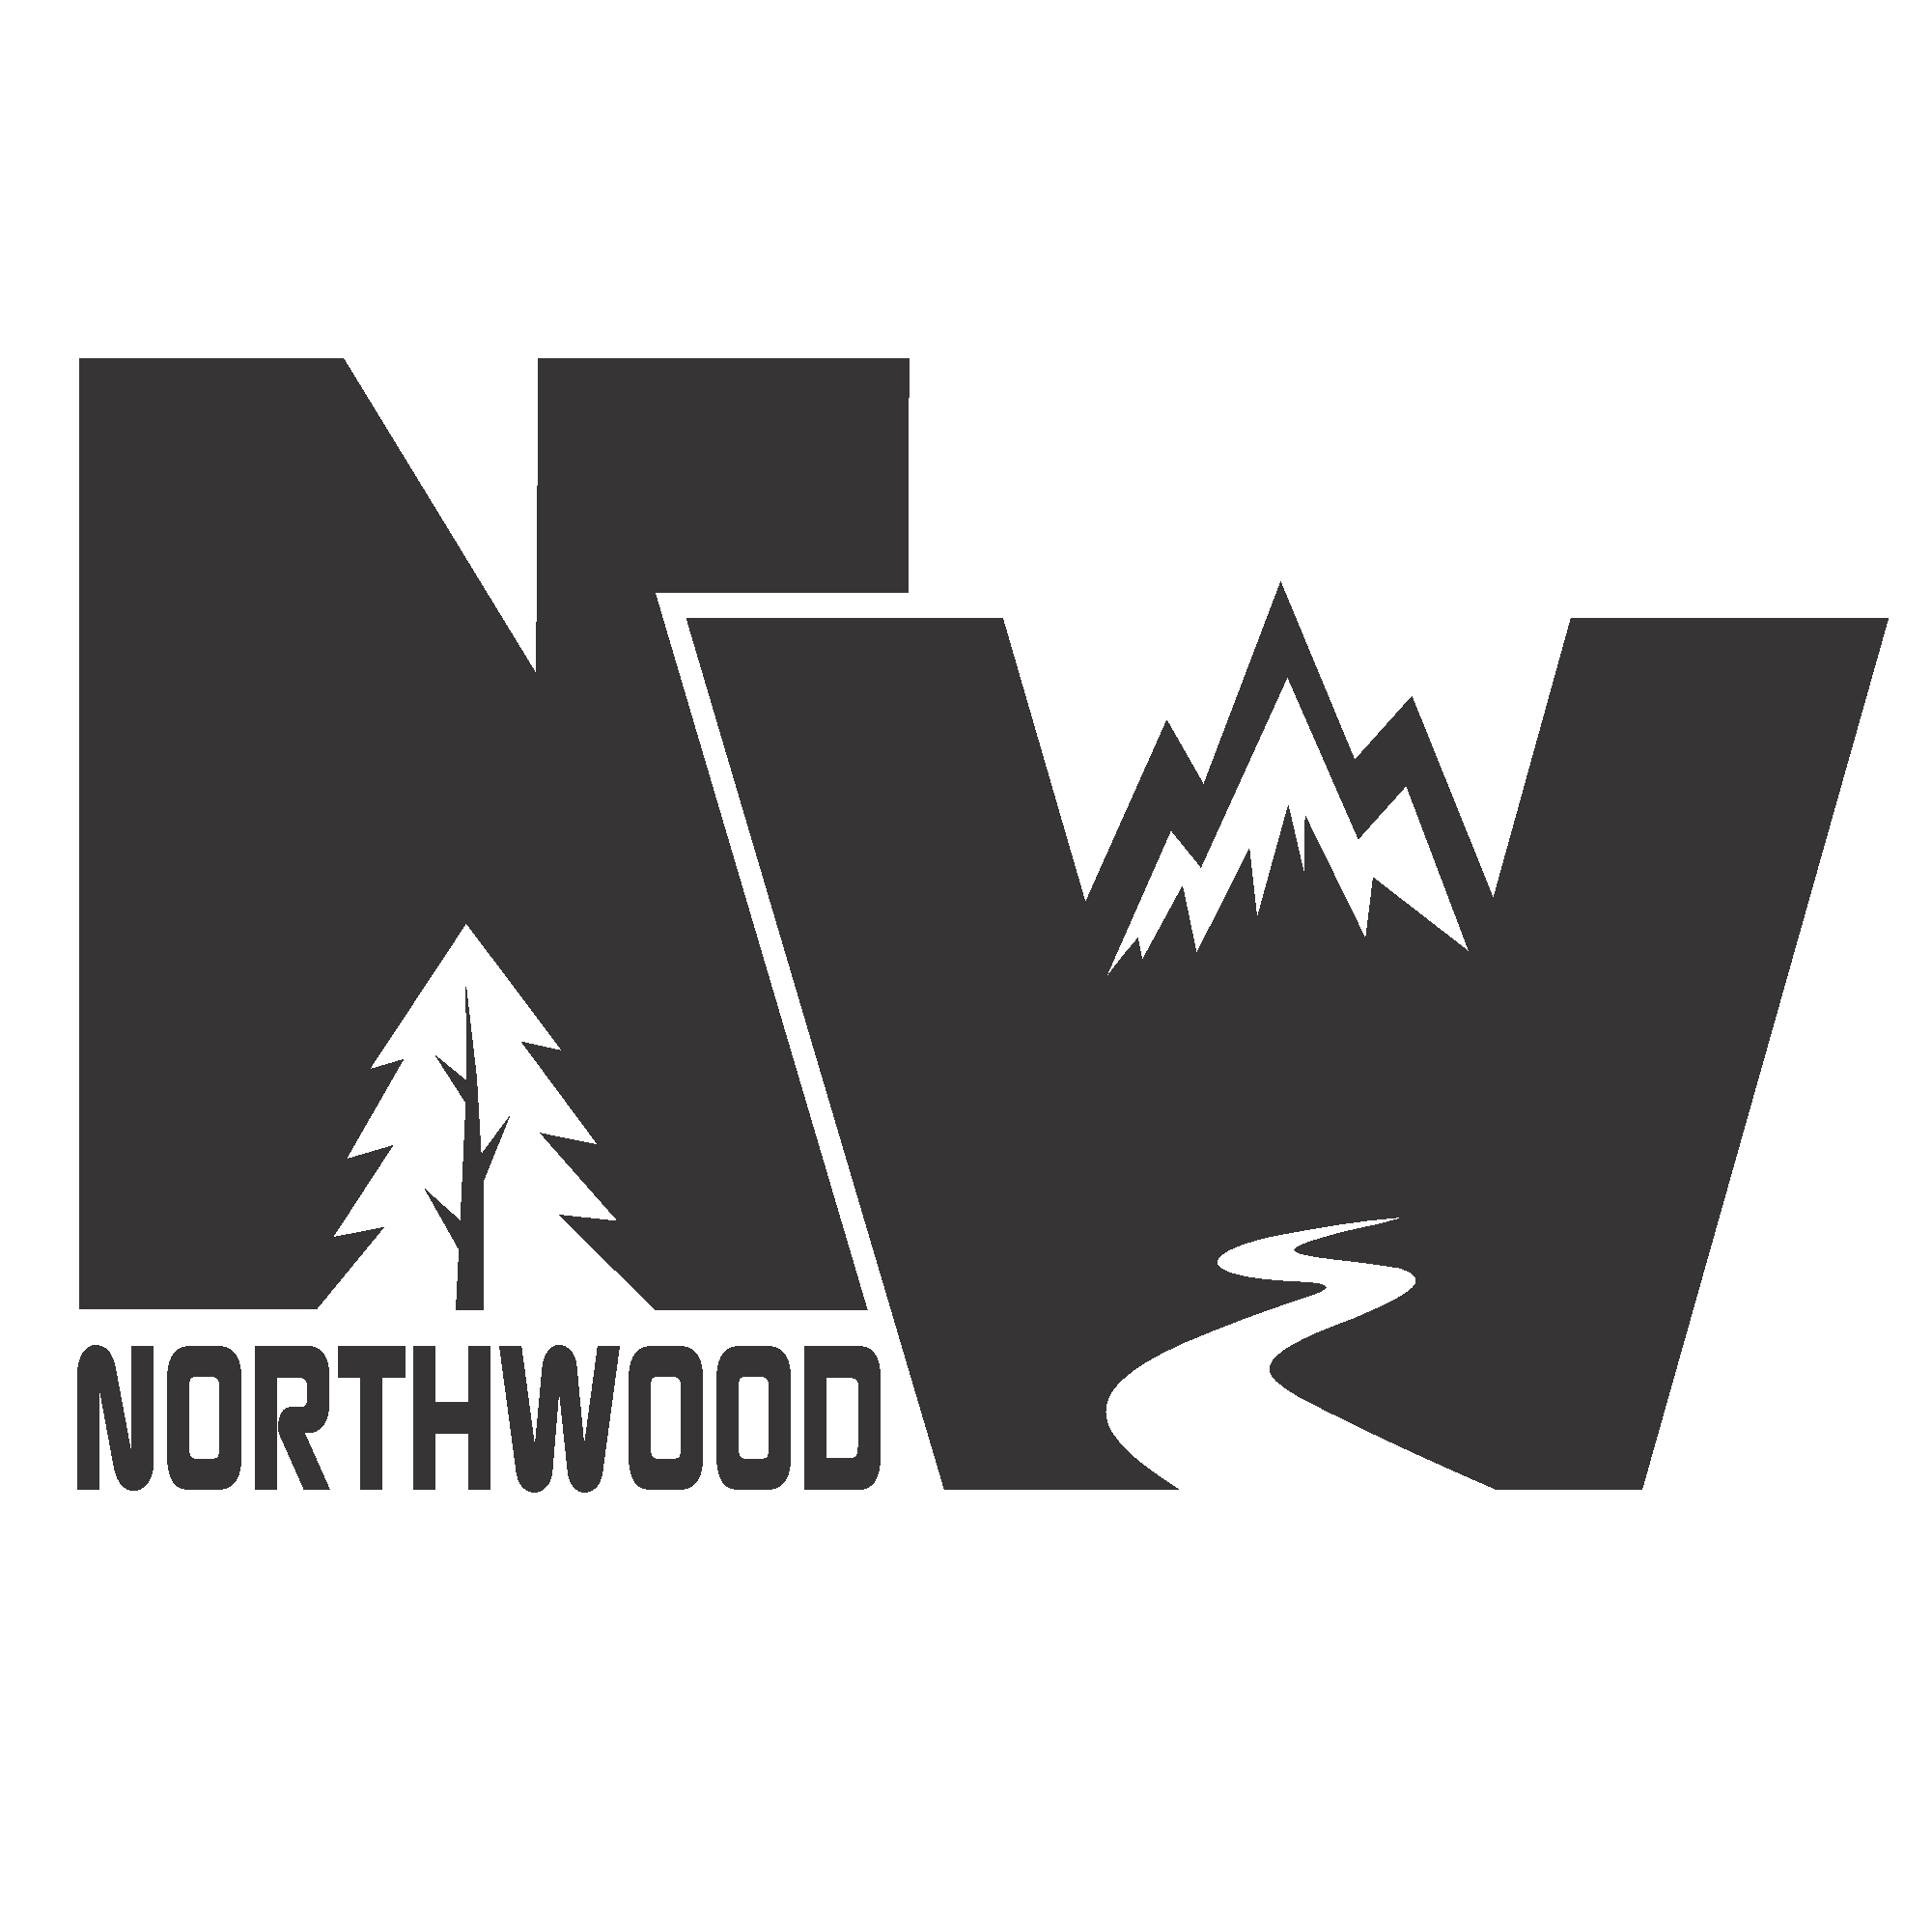 Northwood | Owner's Manuals